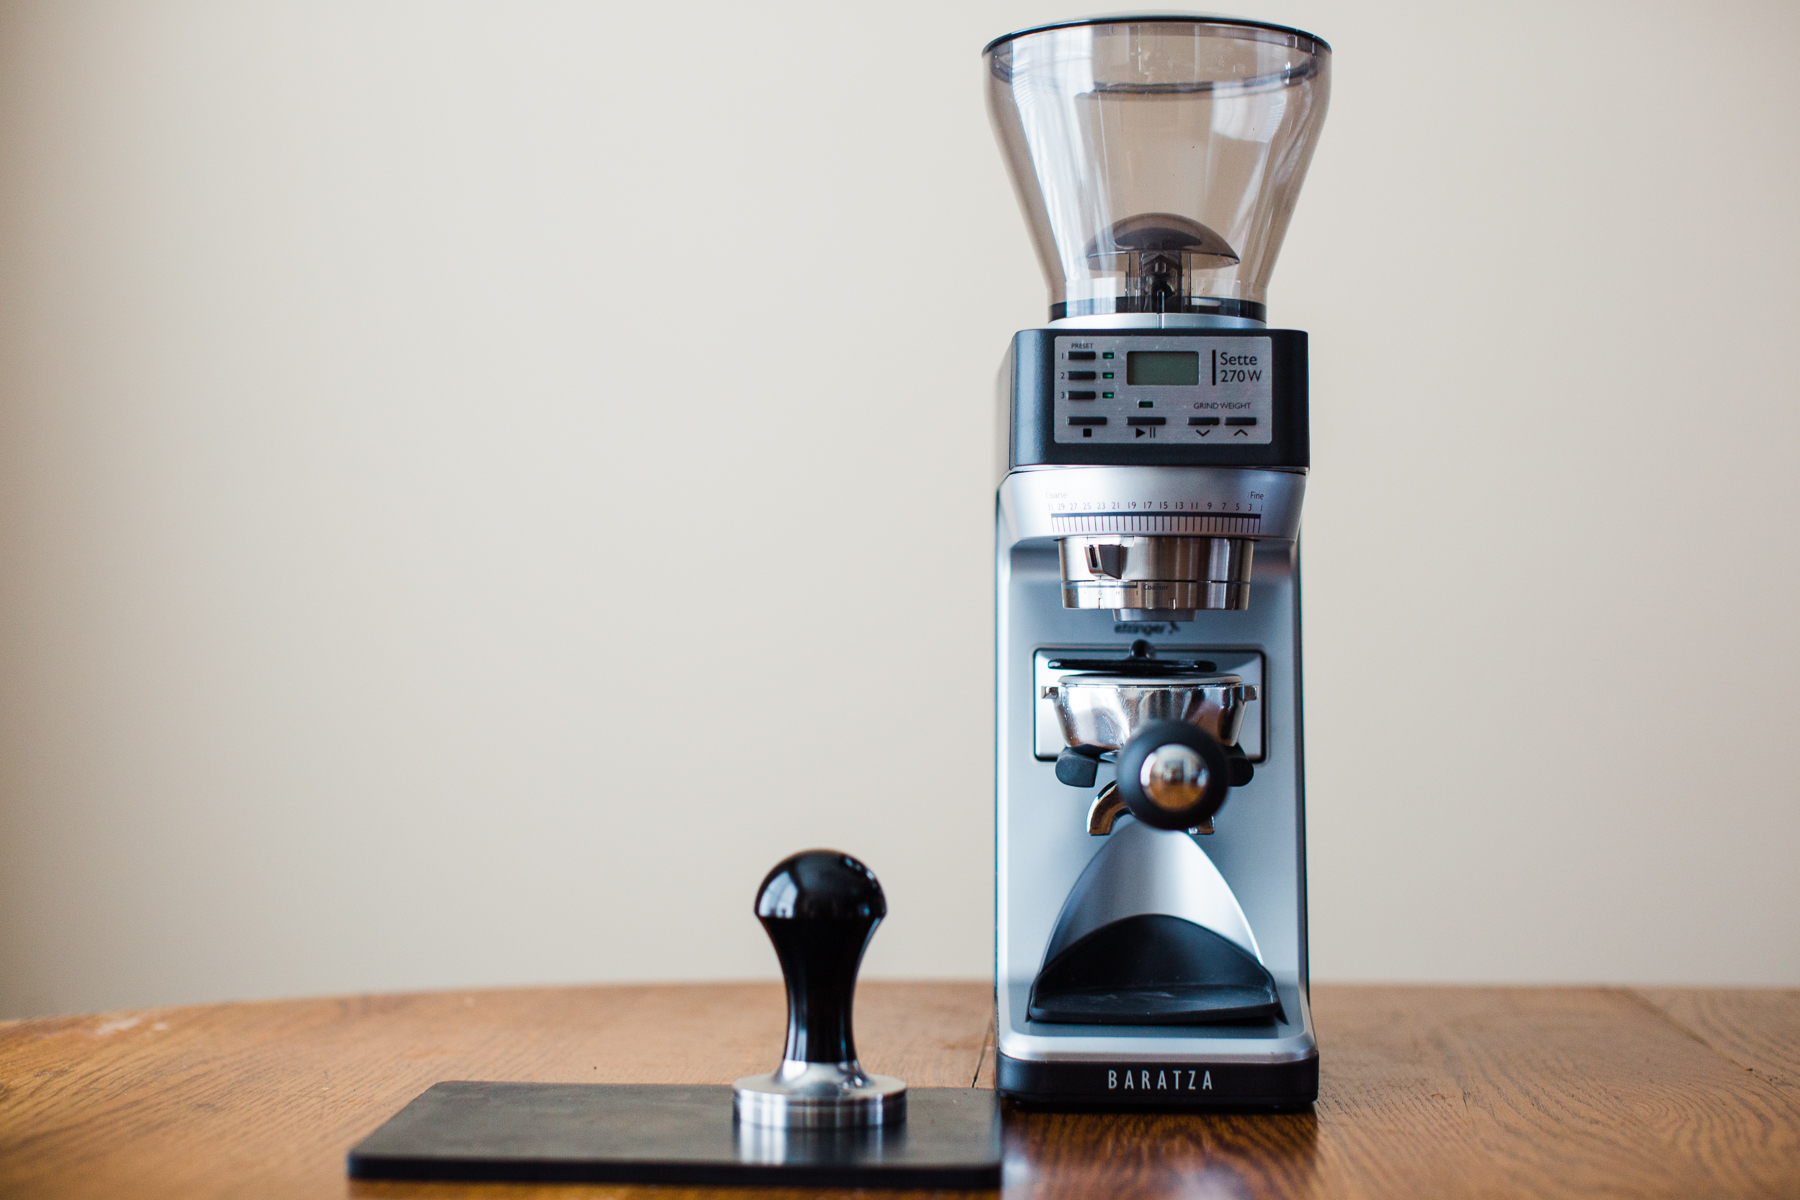 A Baratza Sette 270W holding a portafilter on top of a table with other espresso brewing equipment.